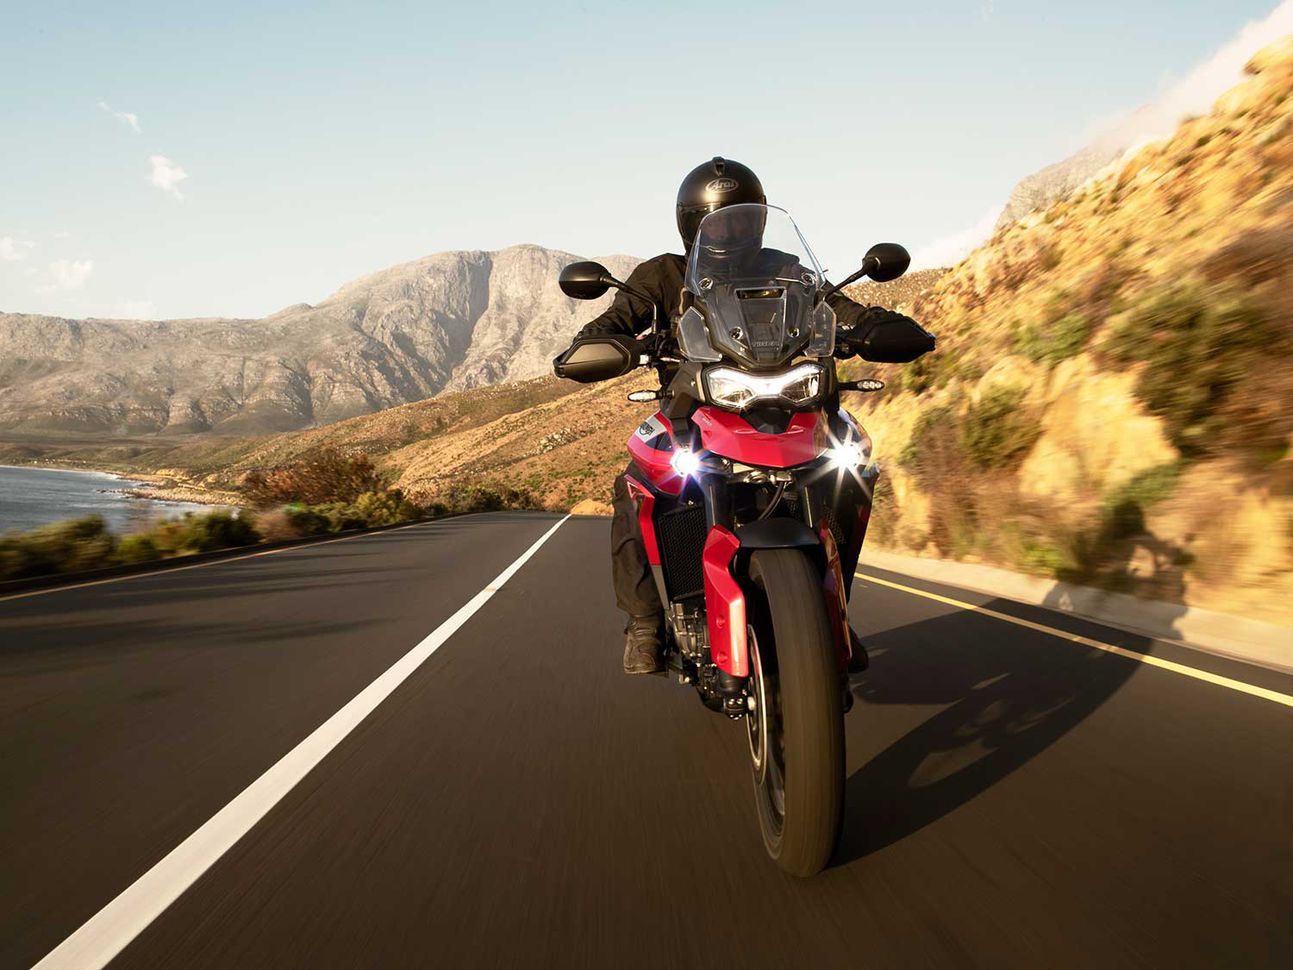 Triumph Motorcycles shows off its new Tiger 900—a middleweight-size adventure-touring bike.